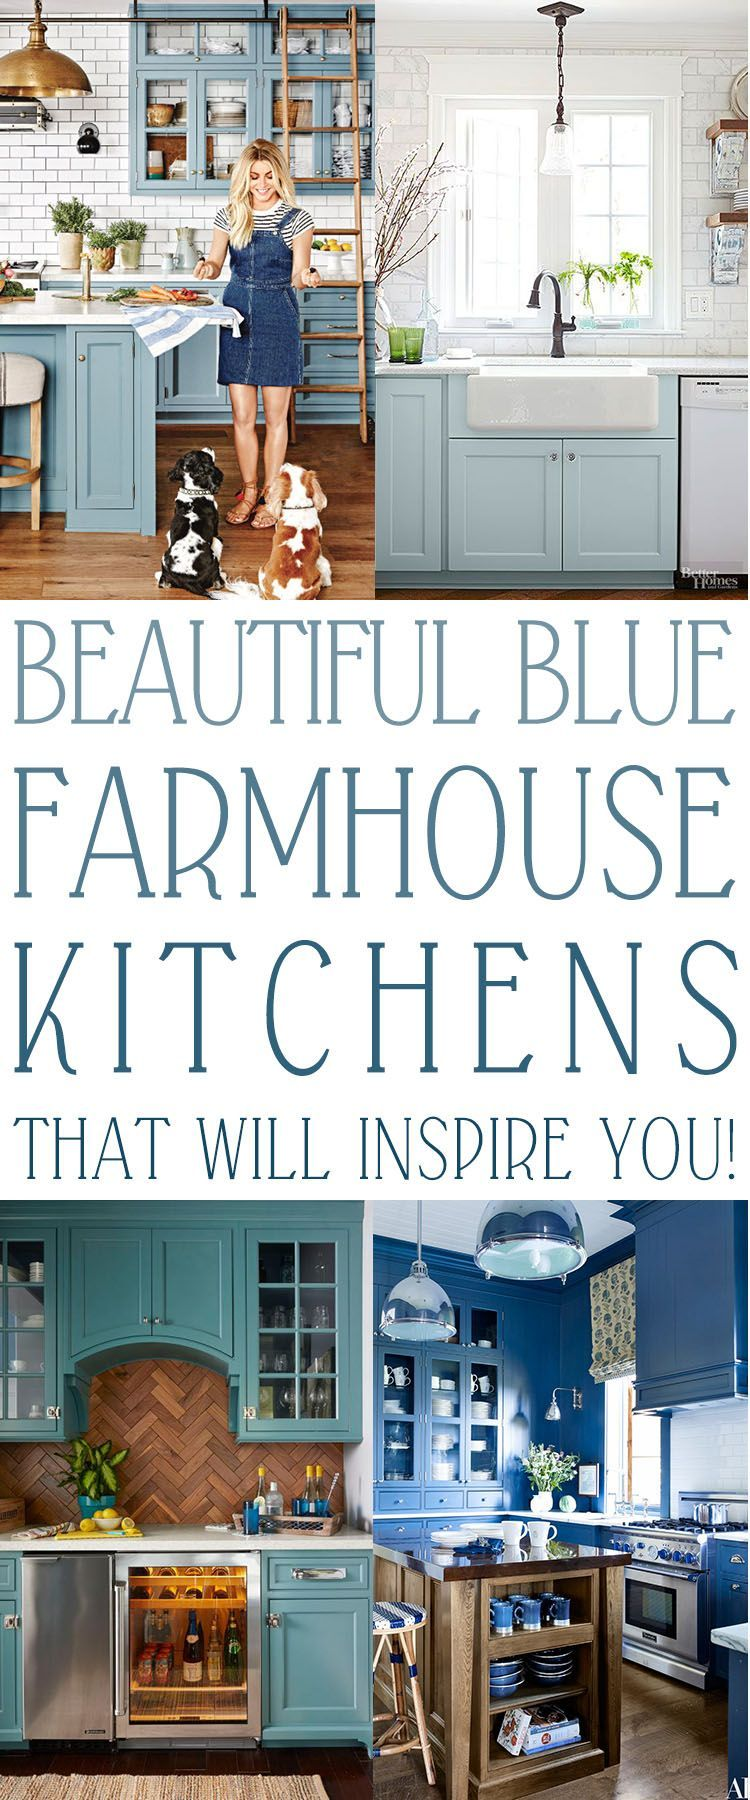 The Ultimate Blue Farmhouse Kitchen Collection #kitchencollection The Ultimate Blue Farmhouse Kitchen Collection - The Cottage Market #kitchencollection